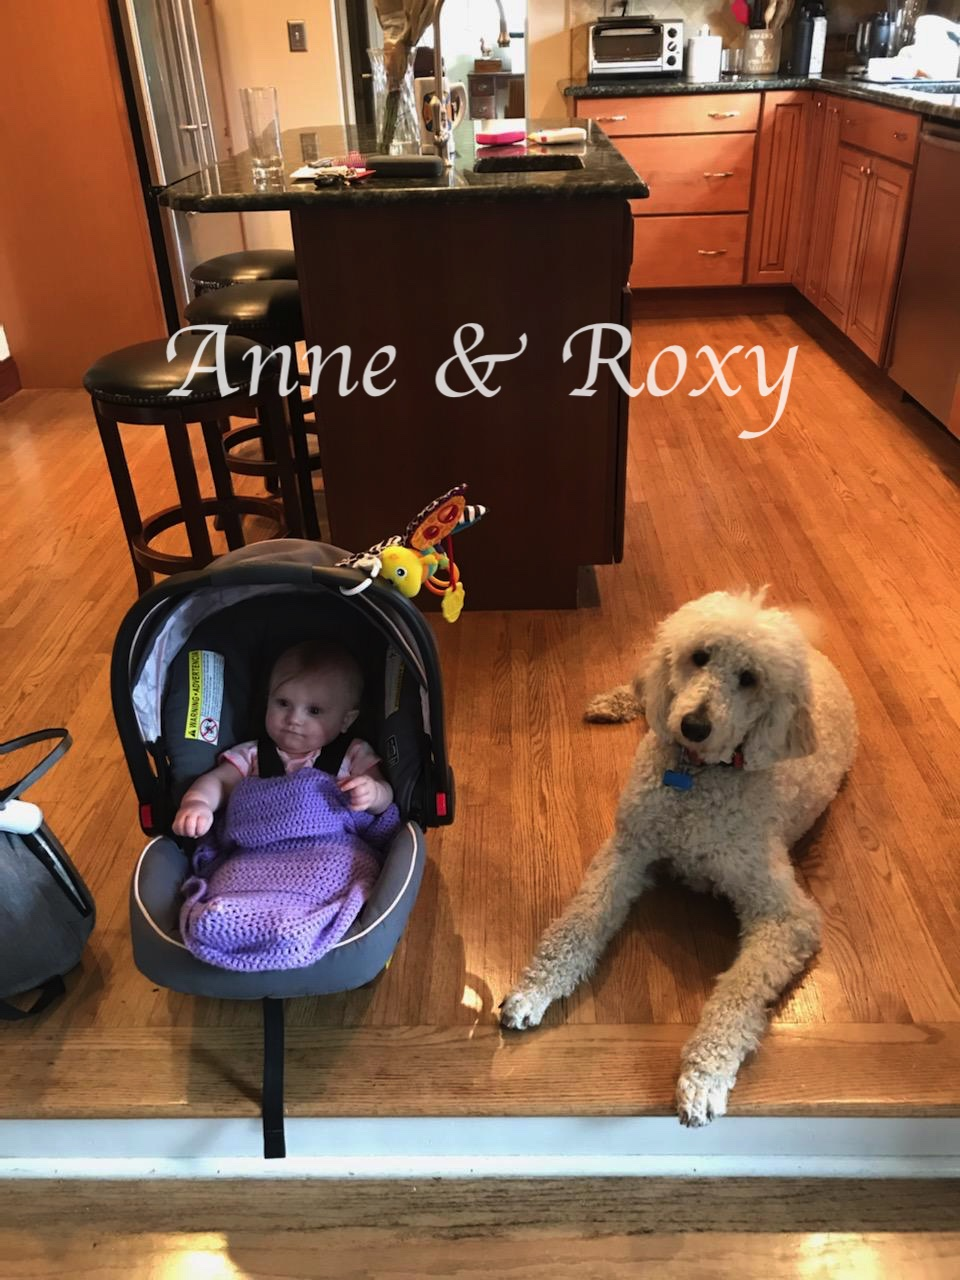 Anne & Roxy Kitchem